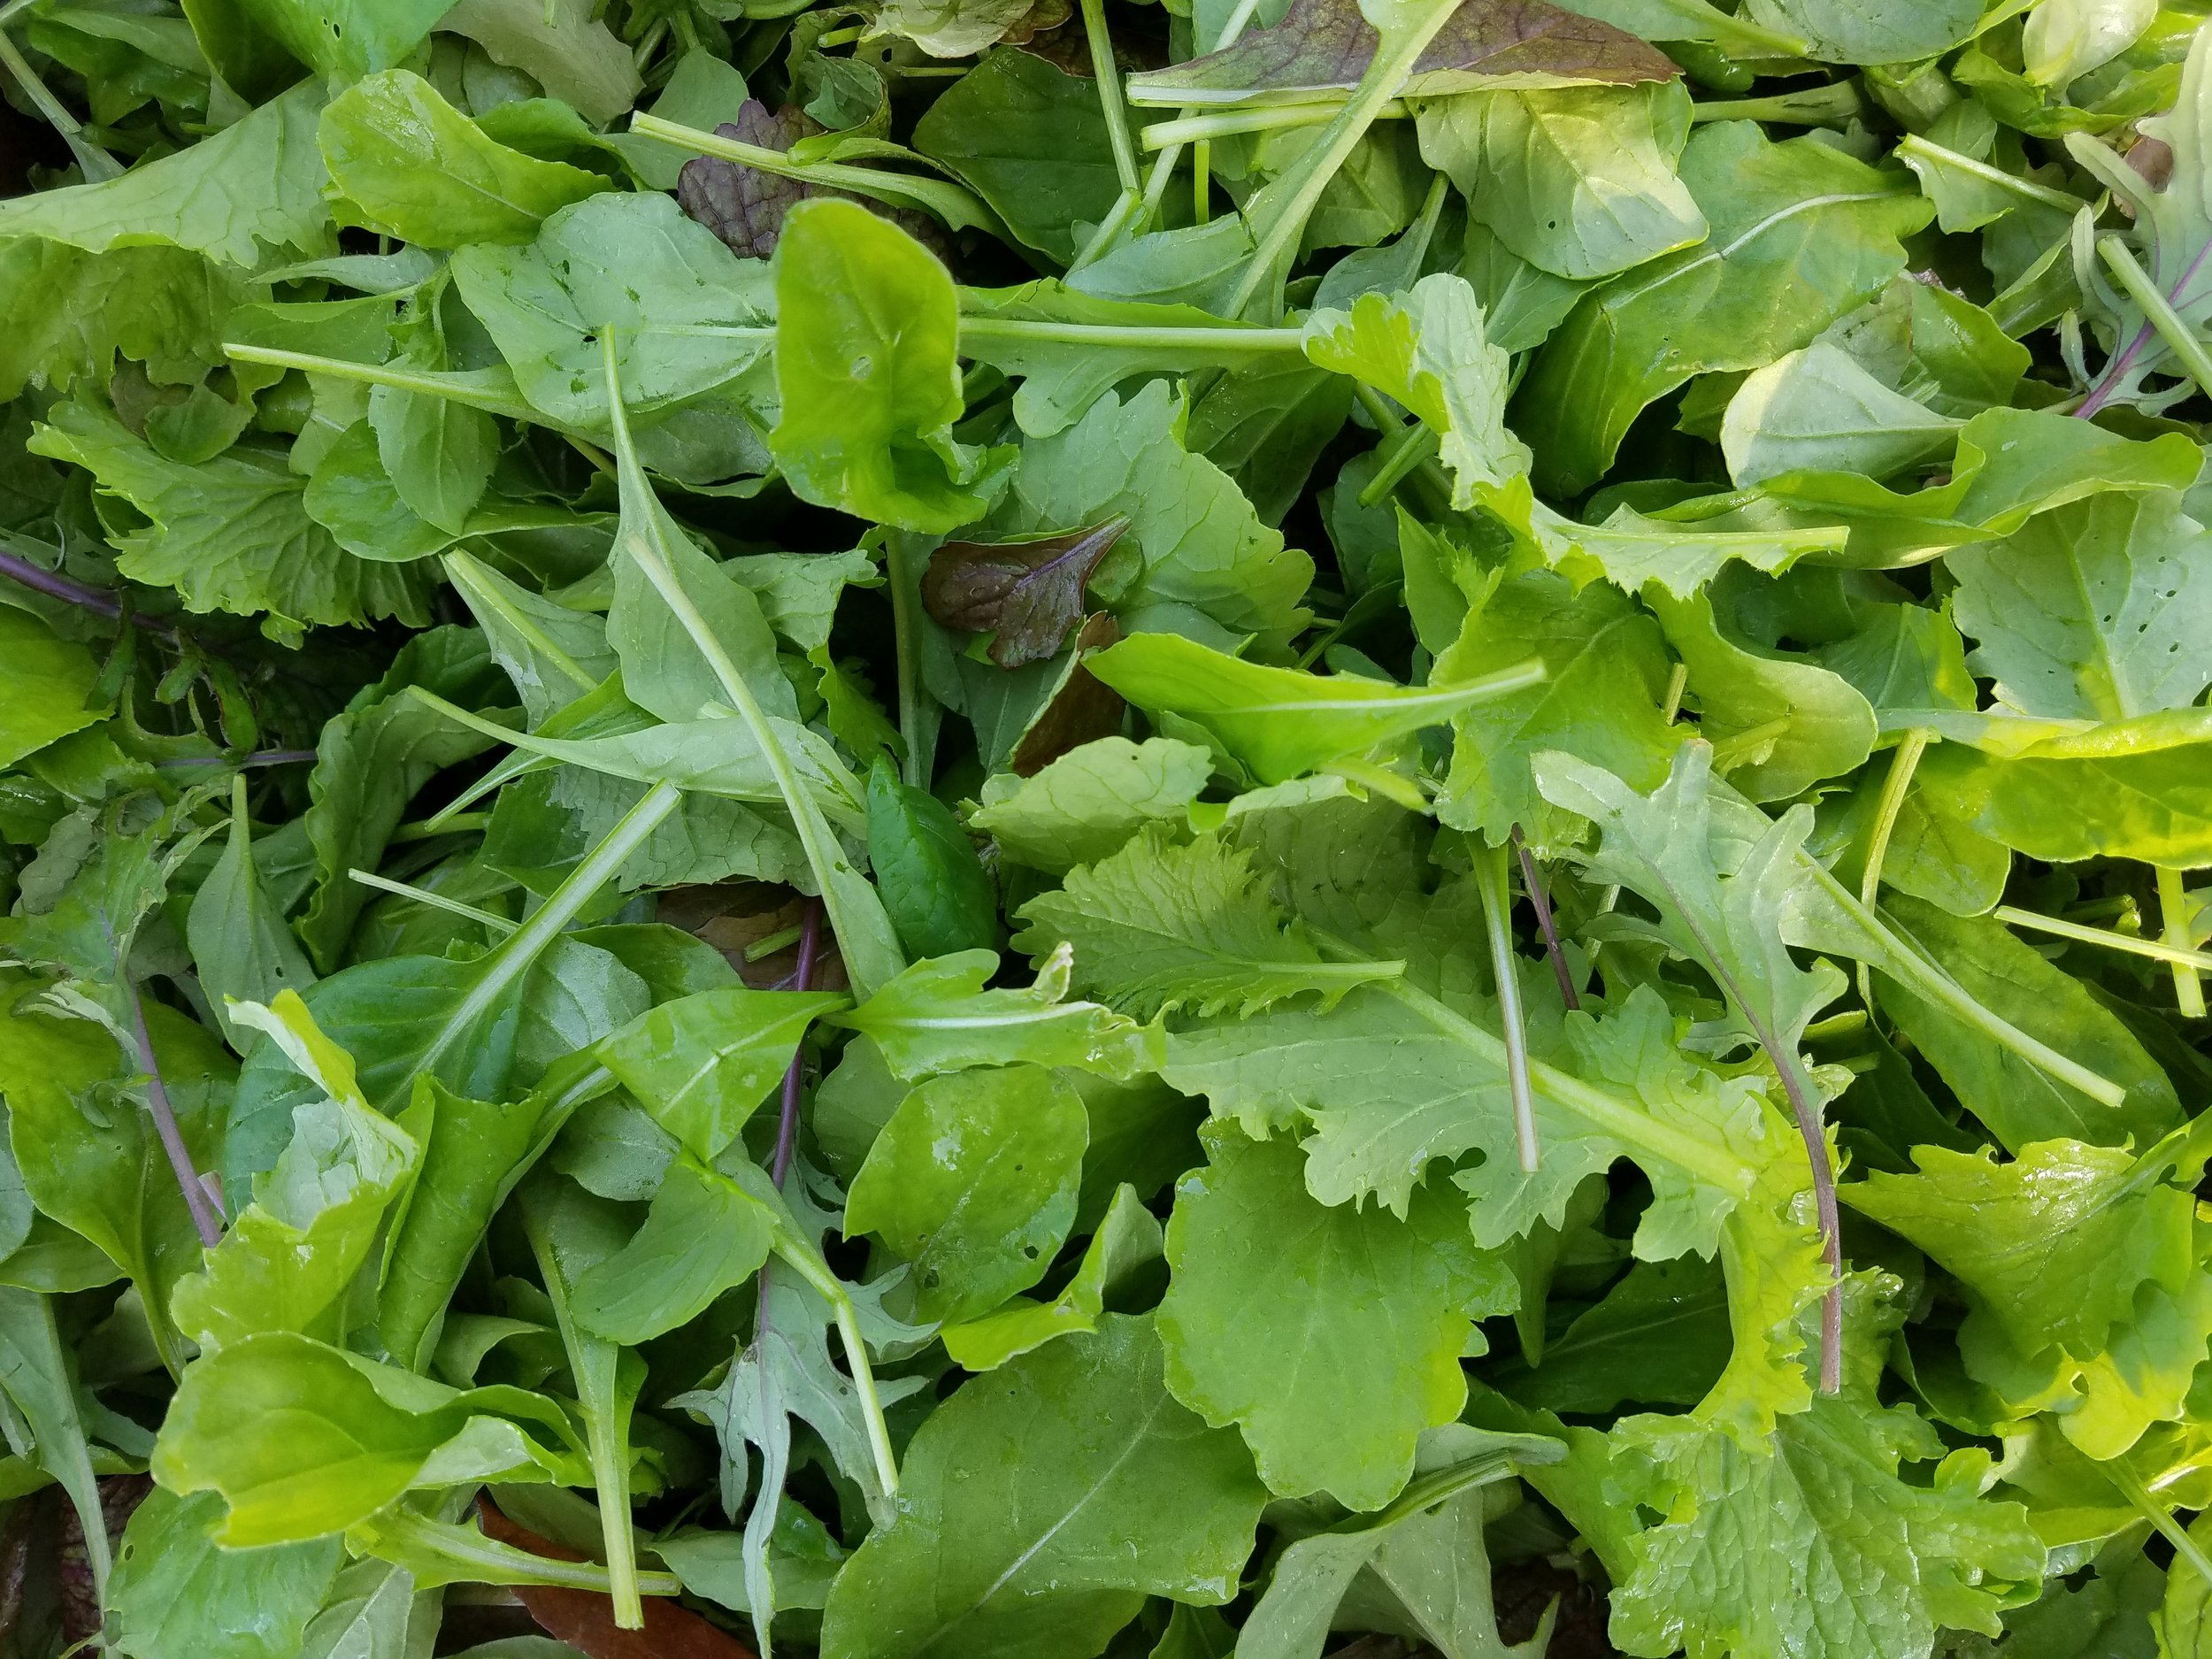 Mesclun mix - A spicy mix of baby lettuces, kale, and mustard greens. Flavorful salads and sandwich toppers.